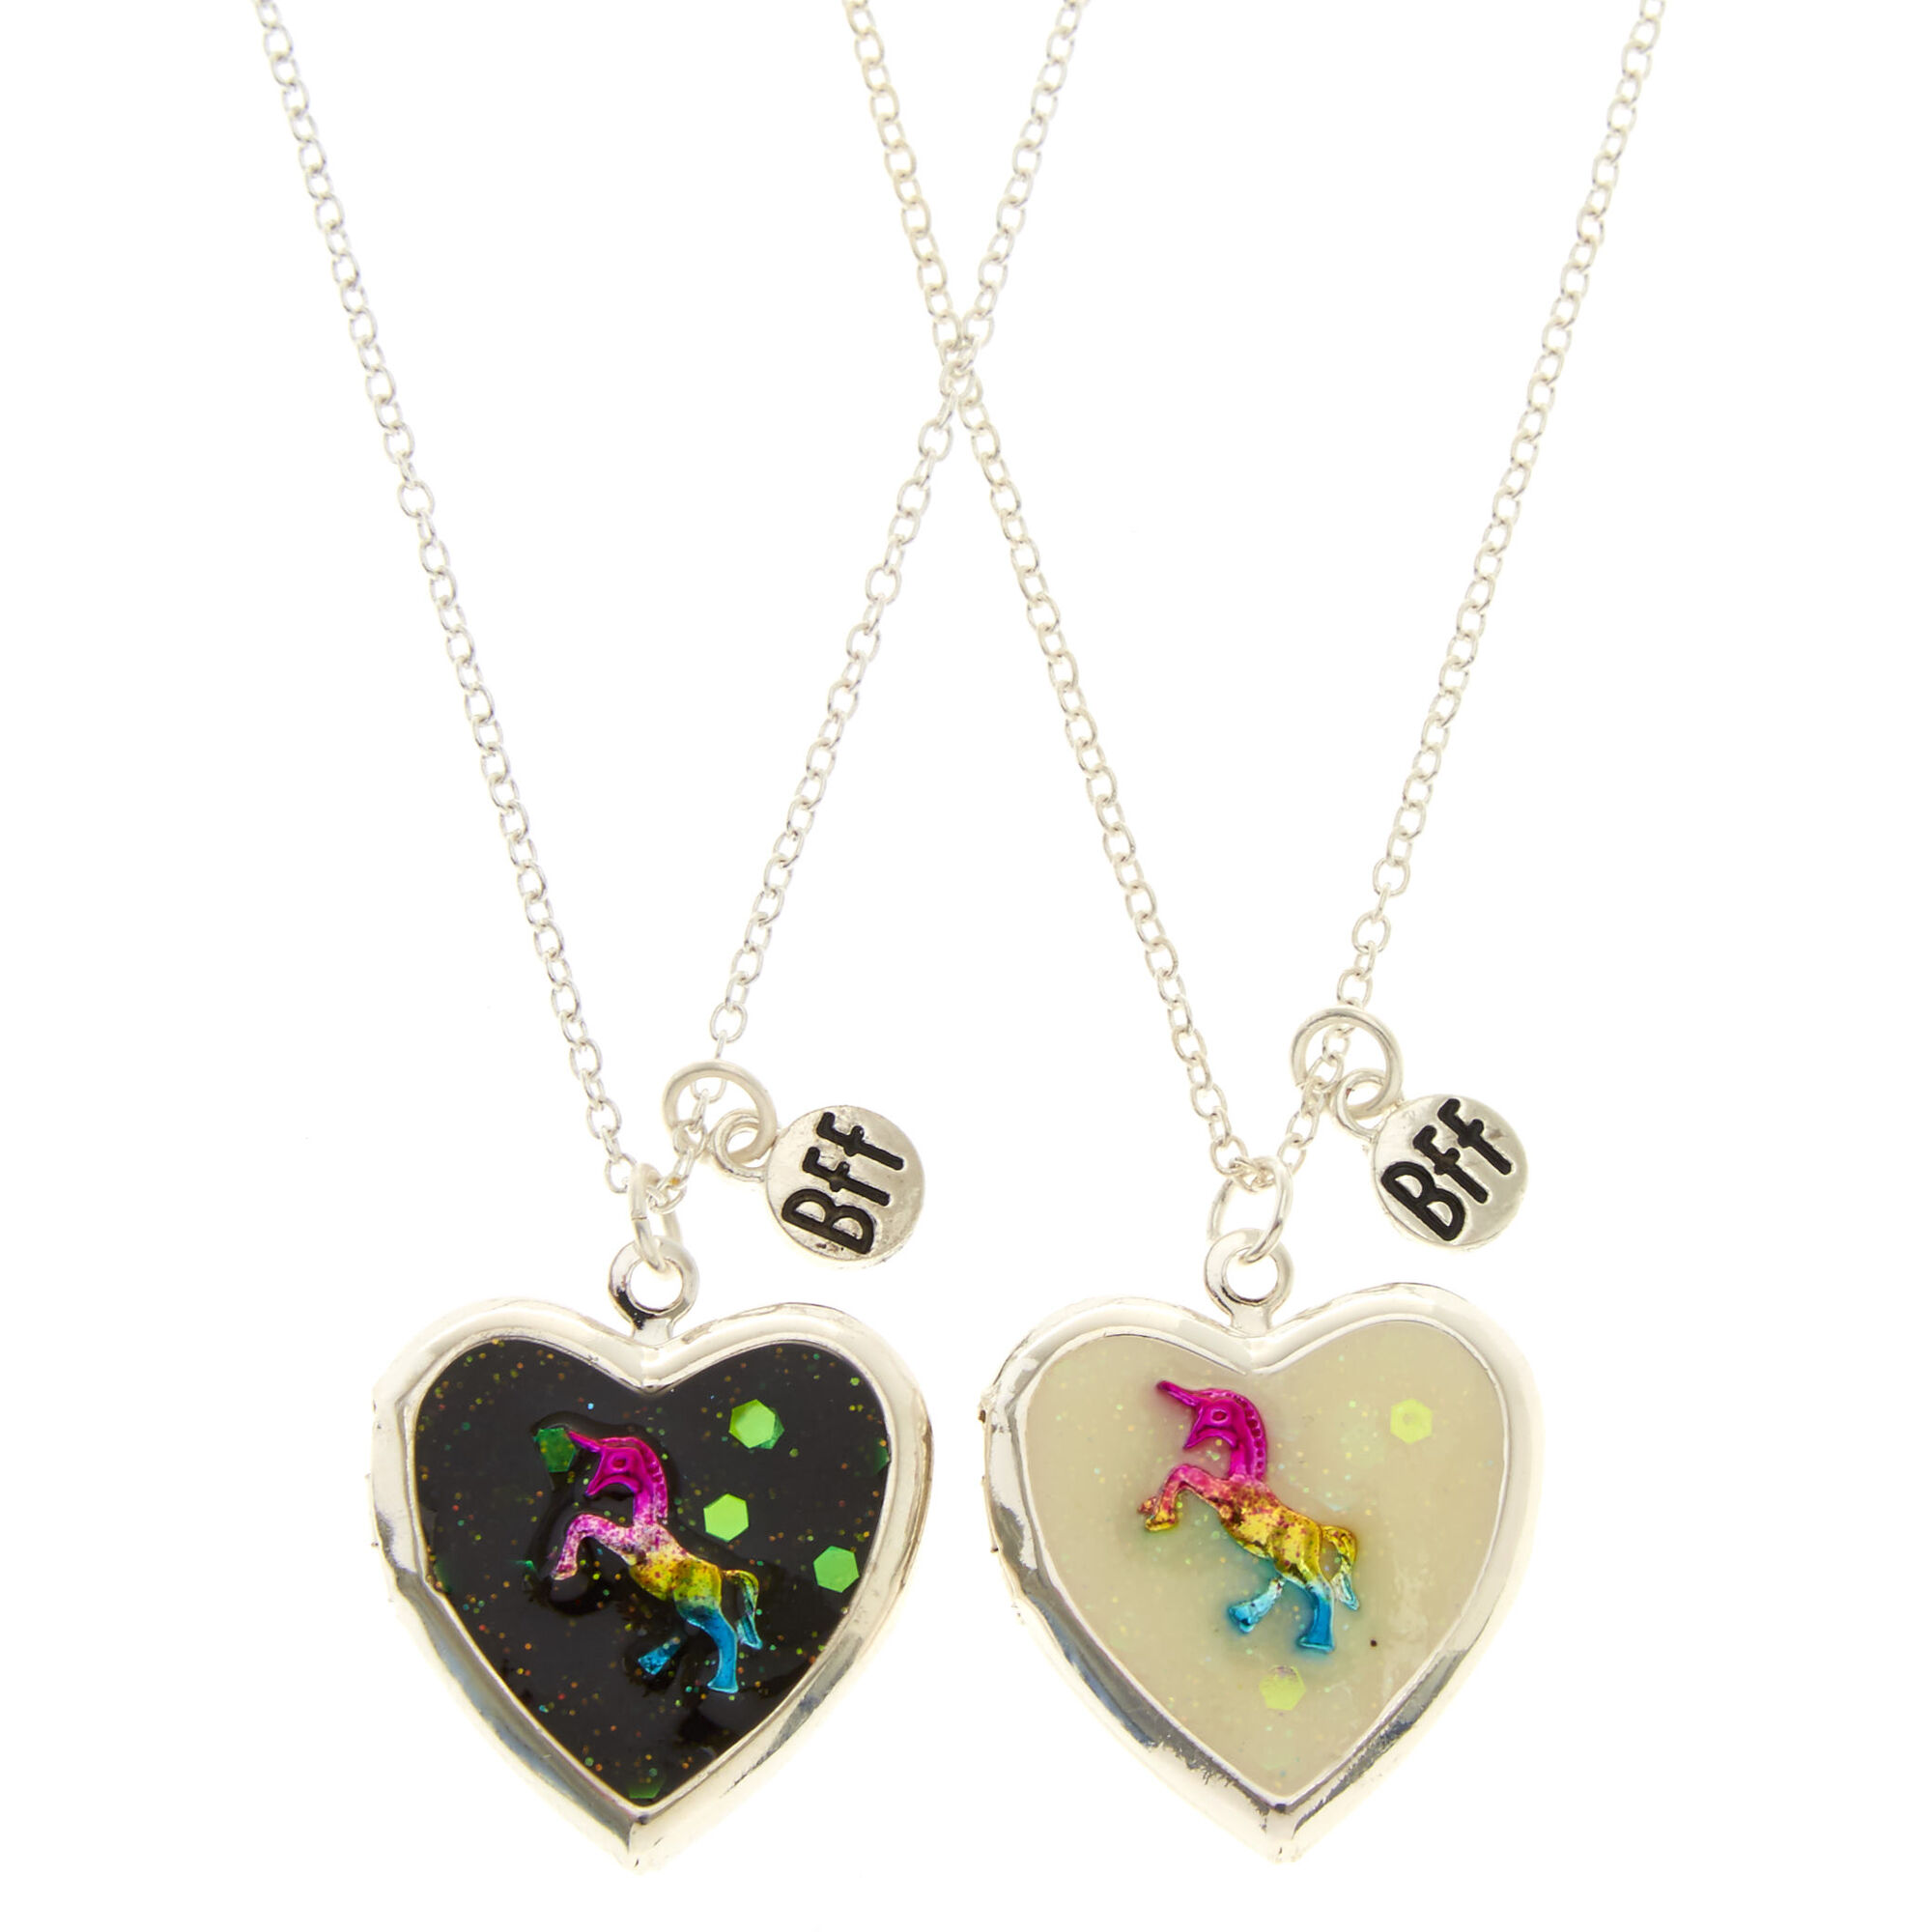 shop encanto online horse jewellery both lockets set